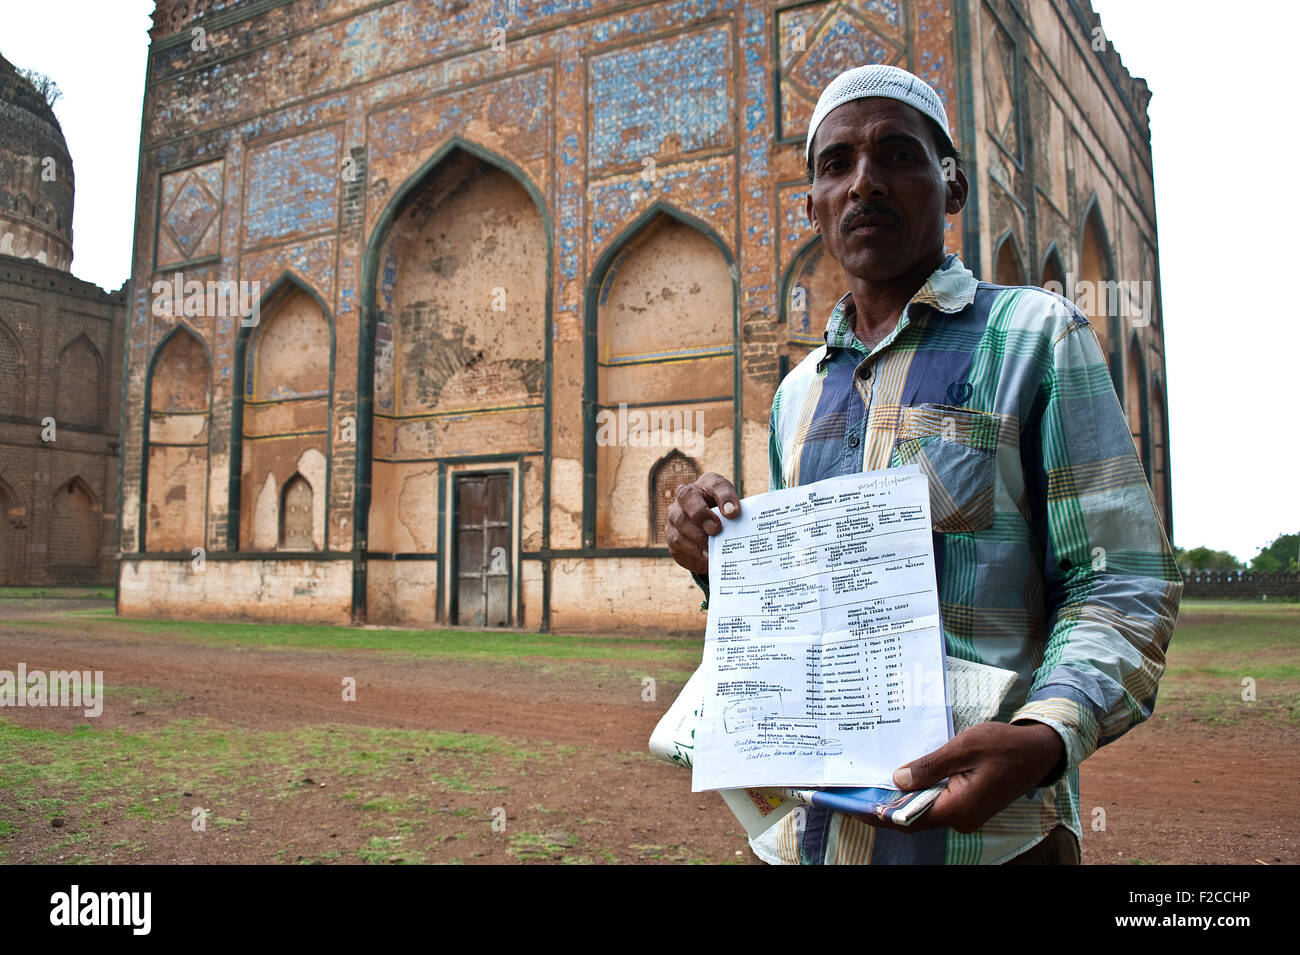 The descendant of a Bahmani king is showing his genealogy tree in front of the tomb of one of his ancestors ( India) - Stock Image